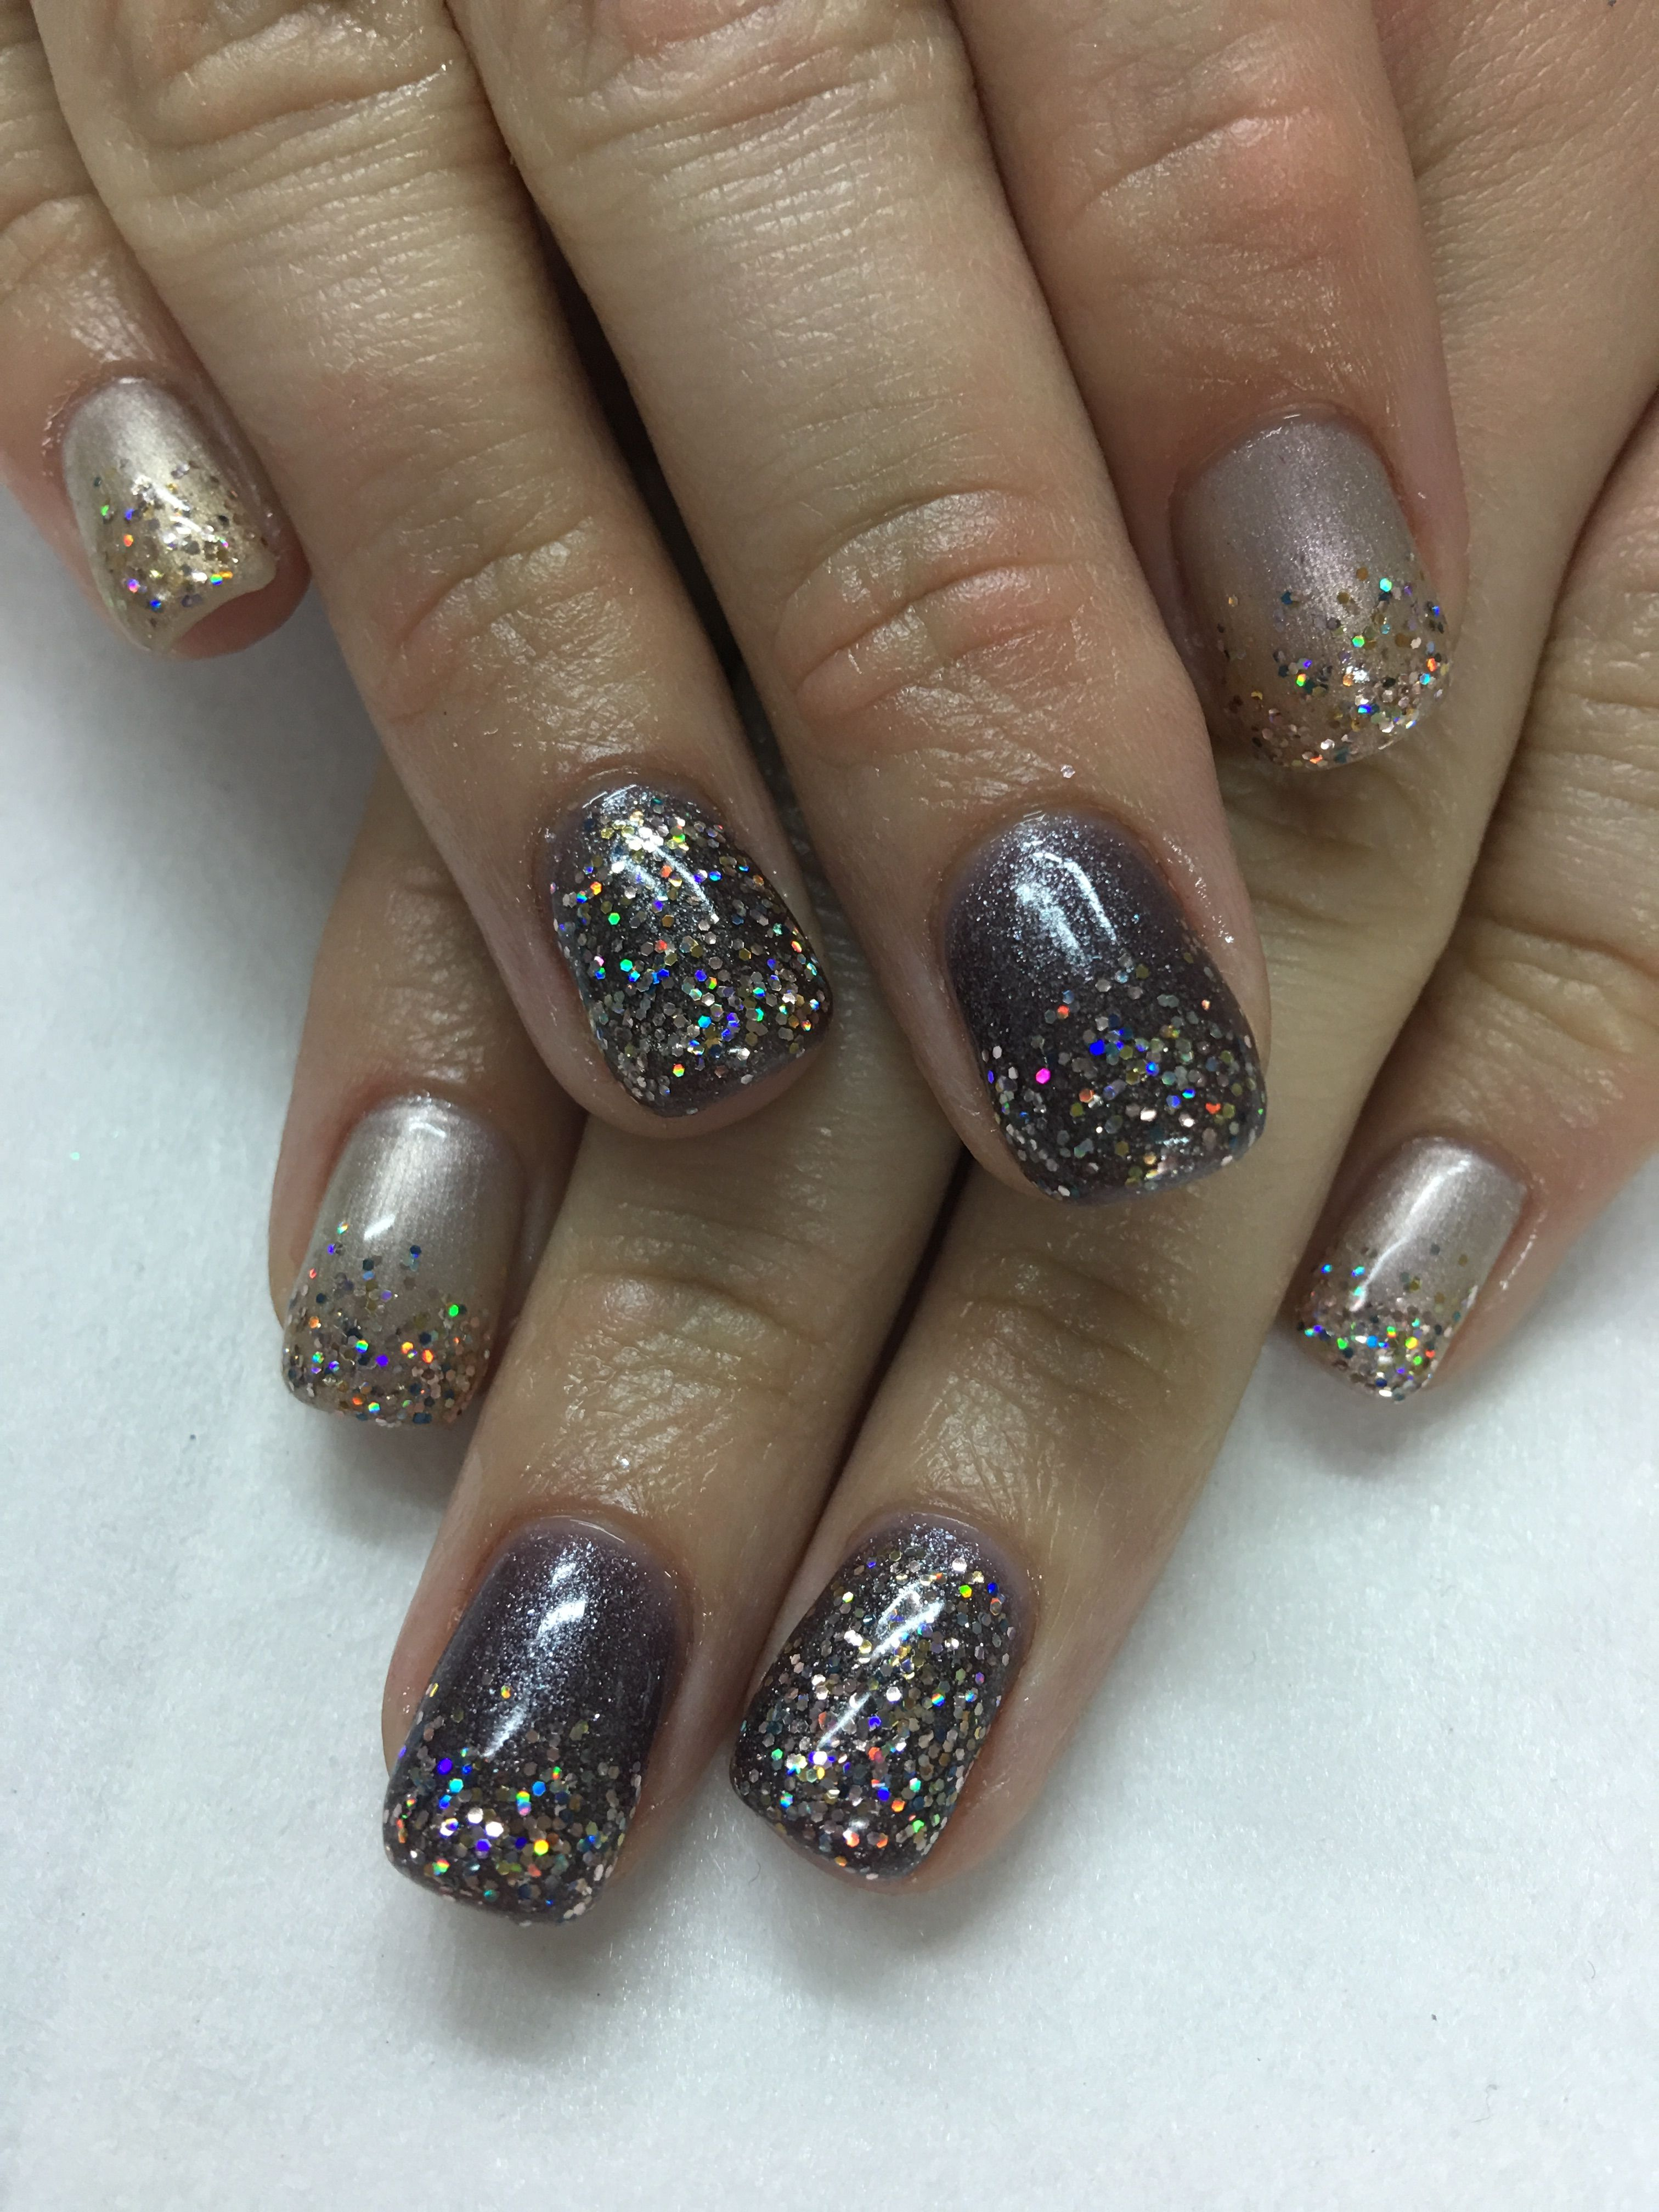 Spring or Fall Shimmer Glitter Nails | Gel Nail designs | Pinterest ...